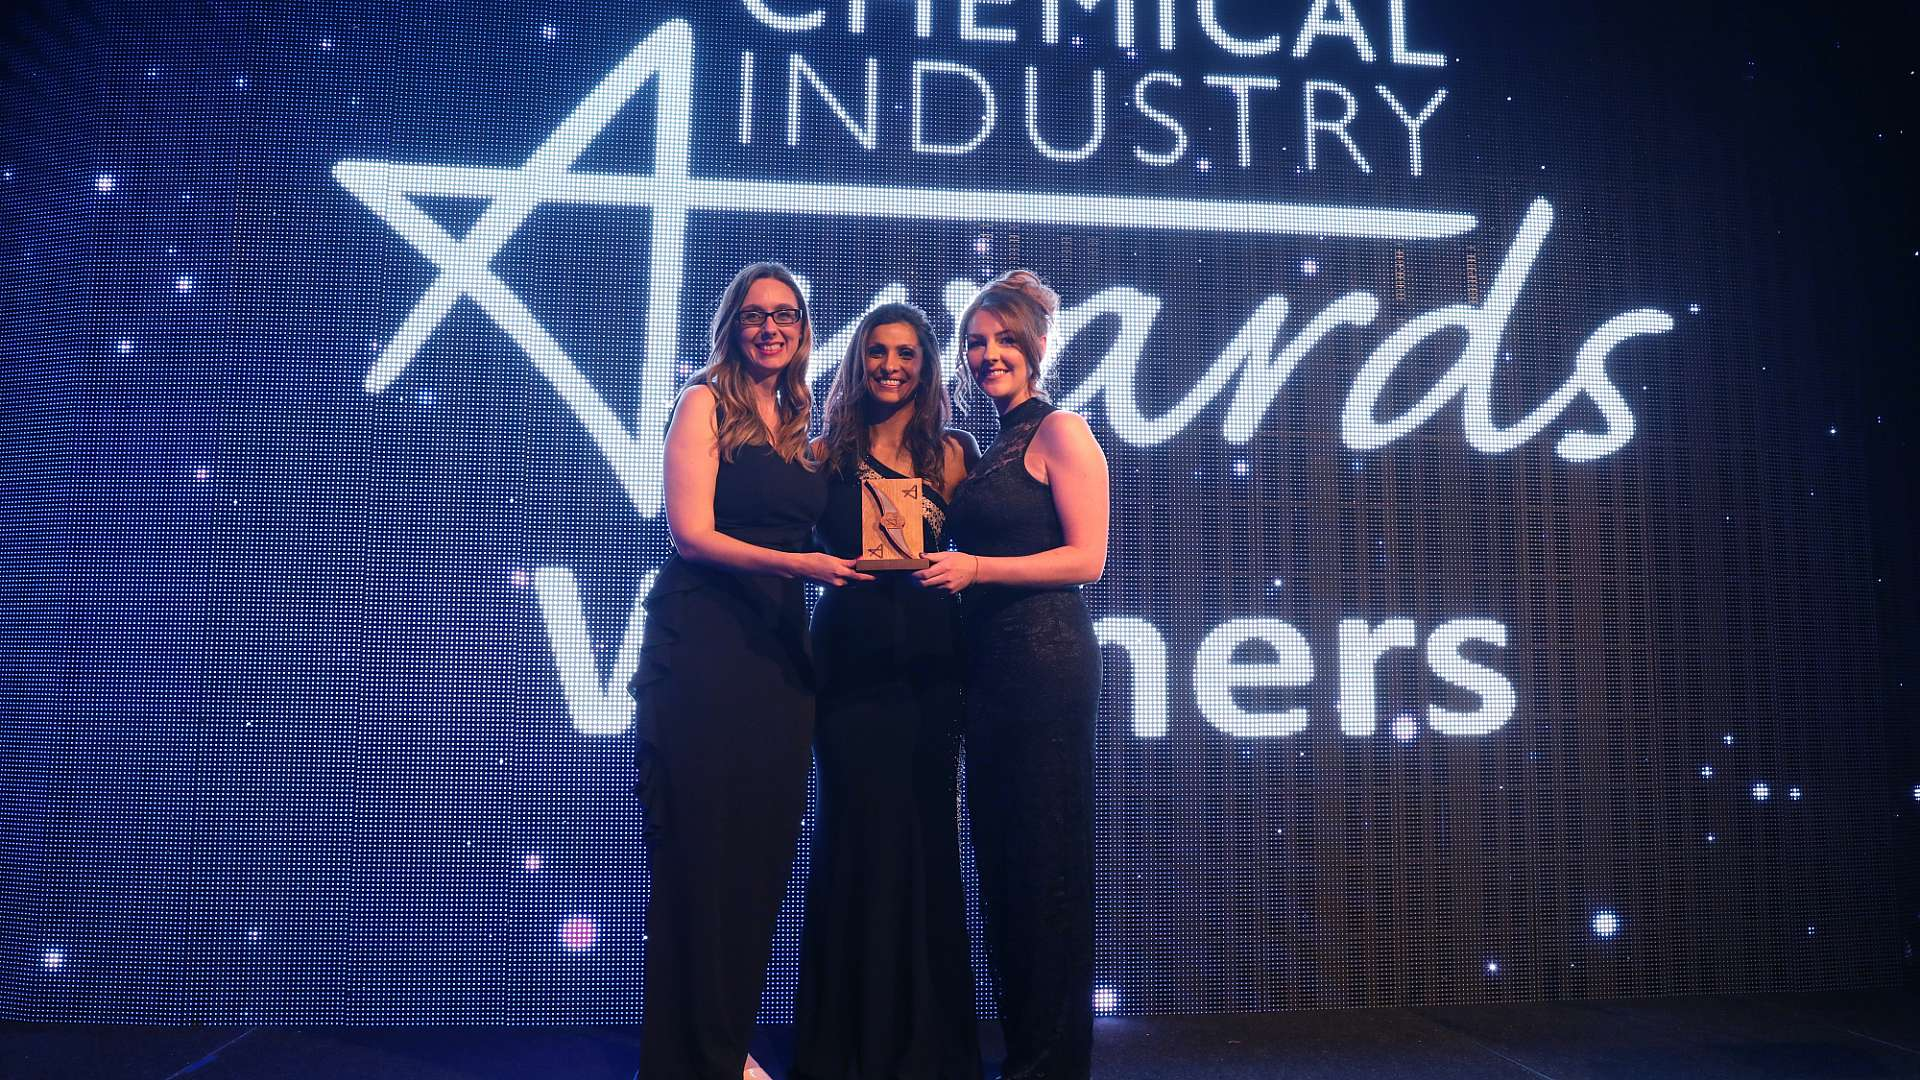 Louise Barker, CPI's Head of Performance & Impact, left, with Sarah Scarr, CPI Impact Analyst, right, and awards host Sameena Ali-Khan